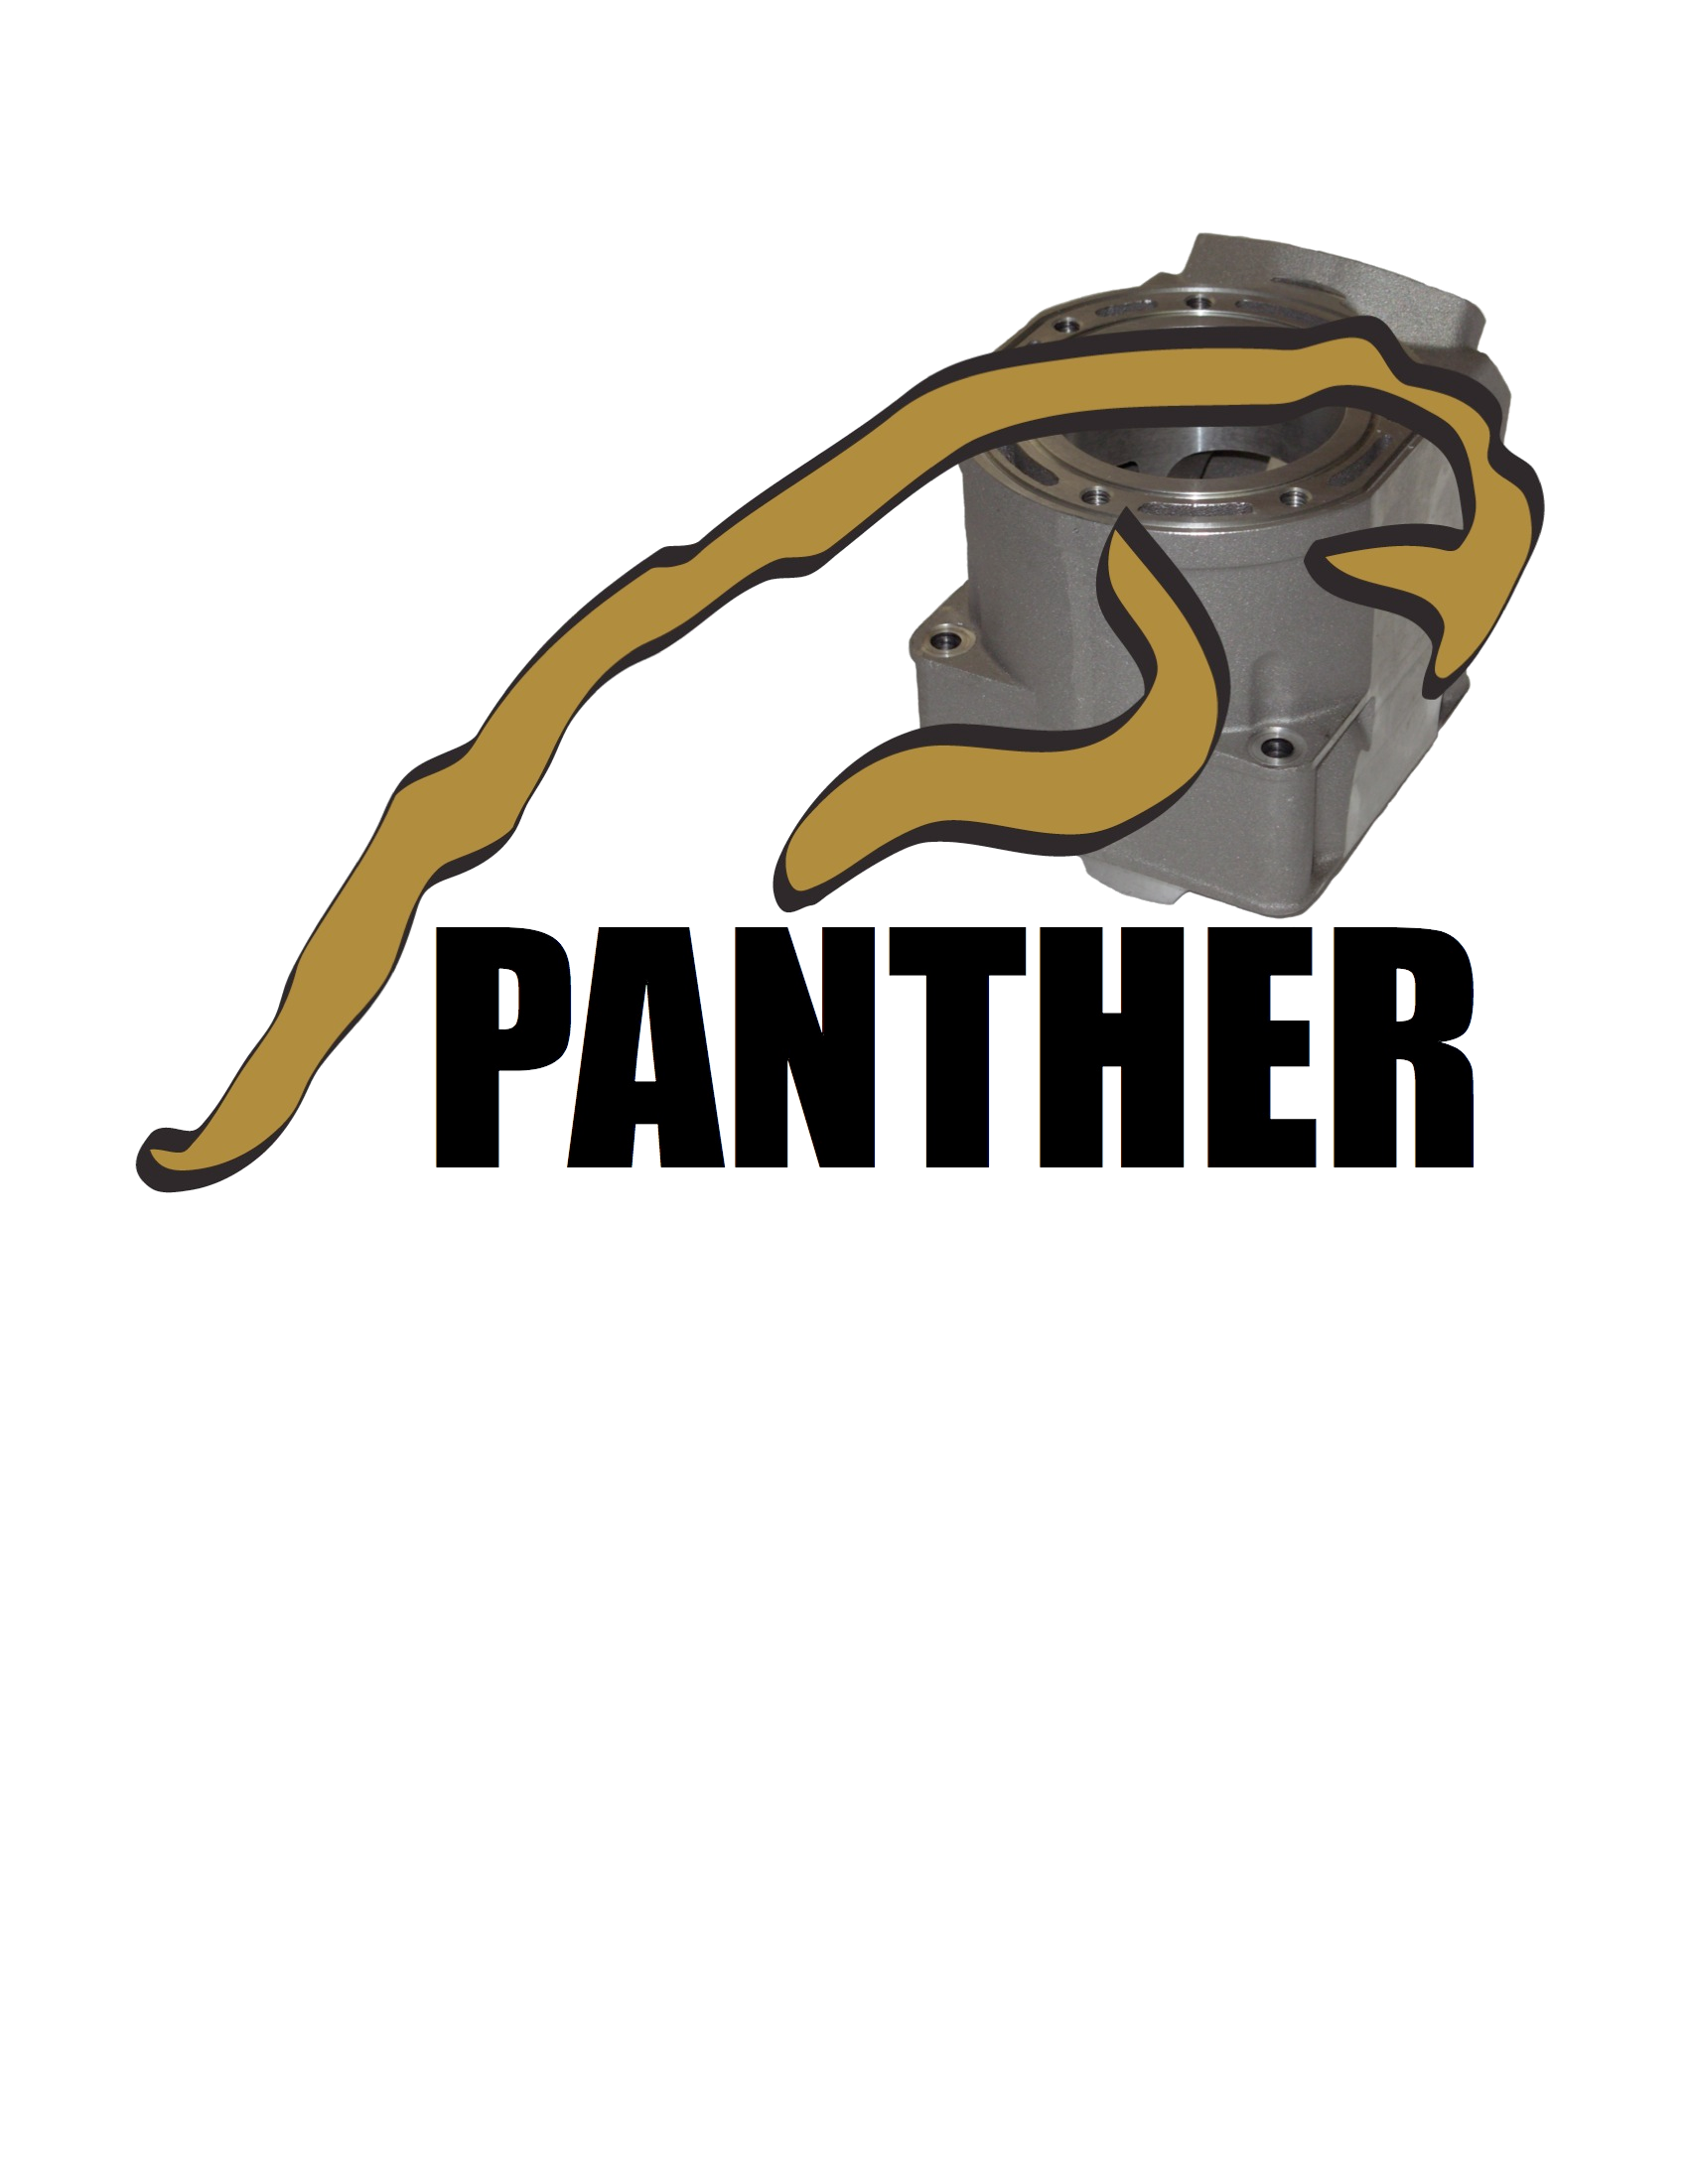 Panther_logo_clear